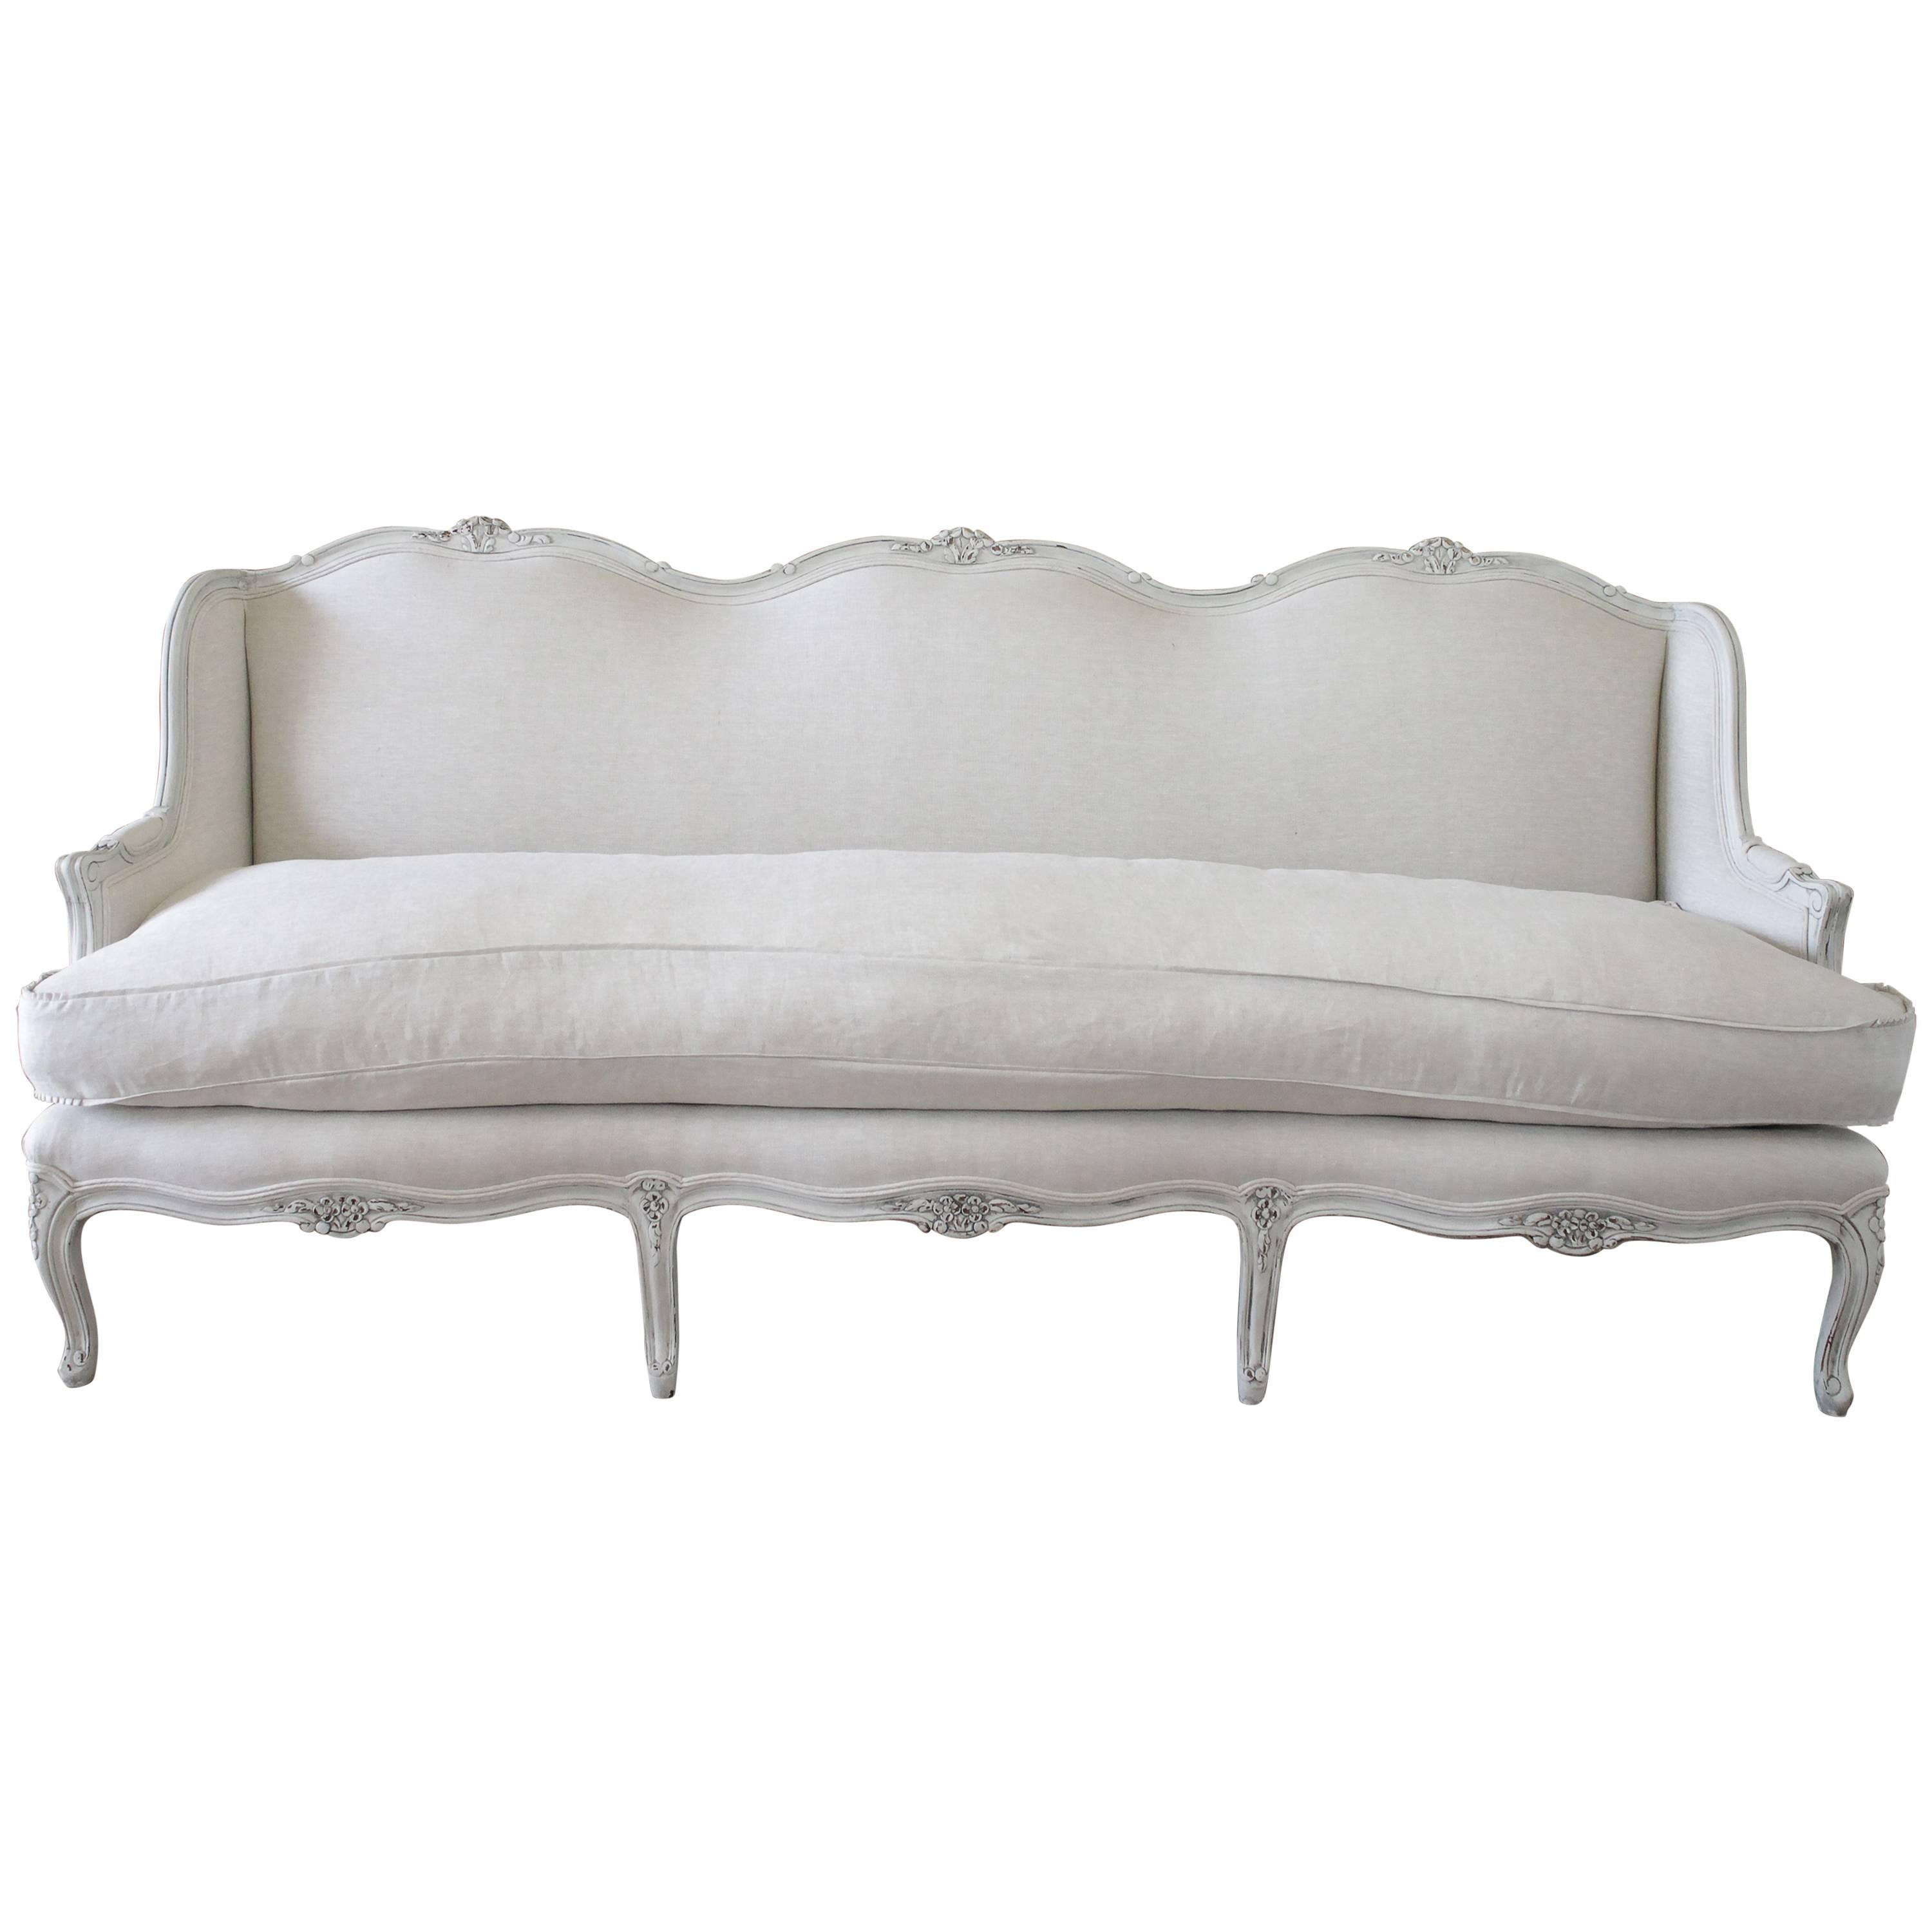 20th Century Painted And Upholstered Country French Sofa In Belgian Linen